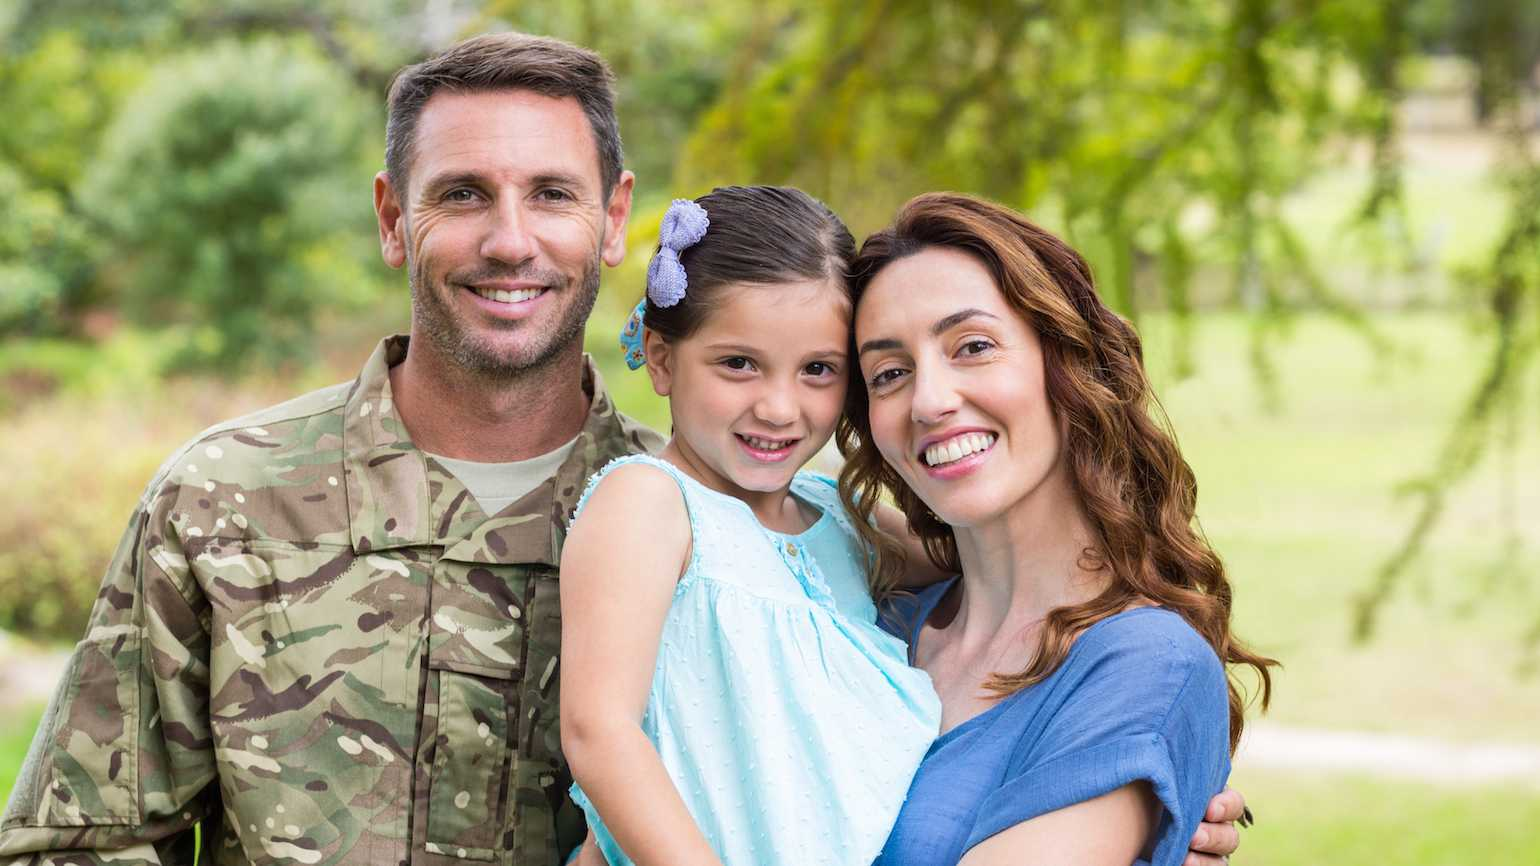 Appreciating military spouses.